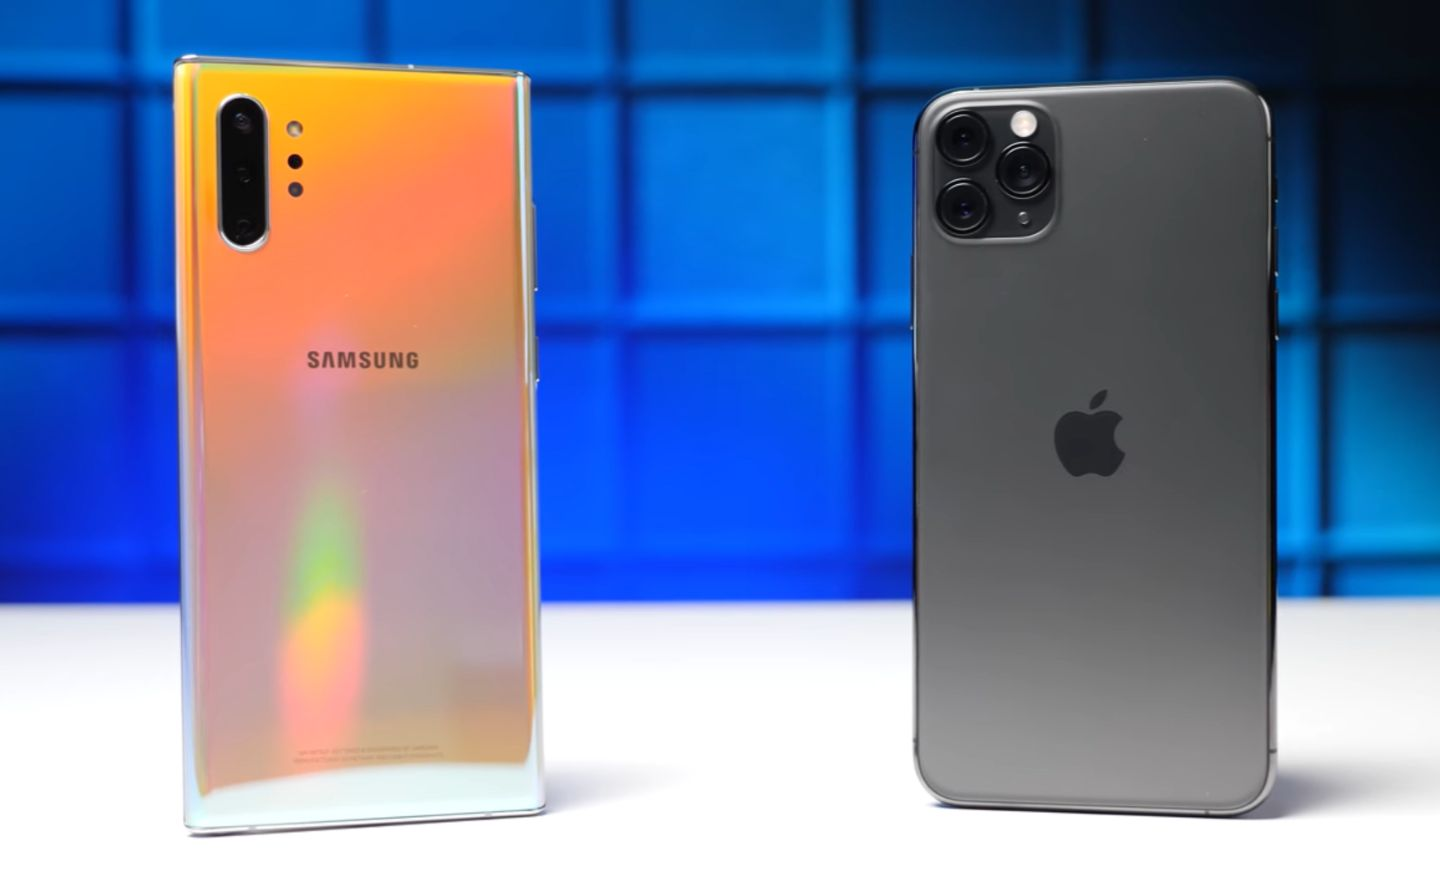 Galaxy Note 10+ Left Behind iPhone 11 Pro Max in Speed Test